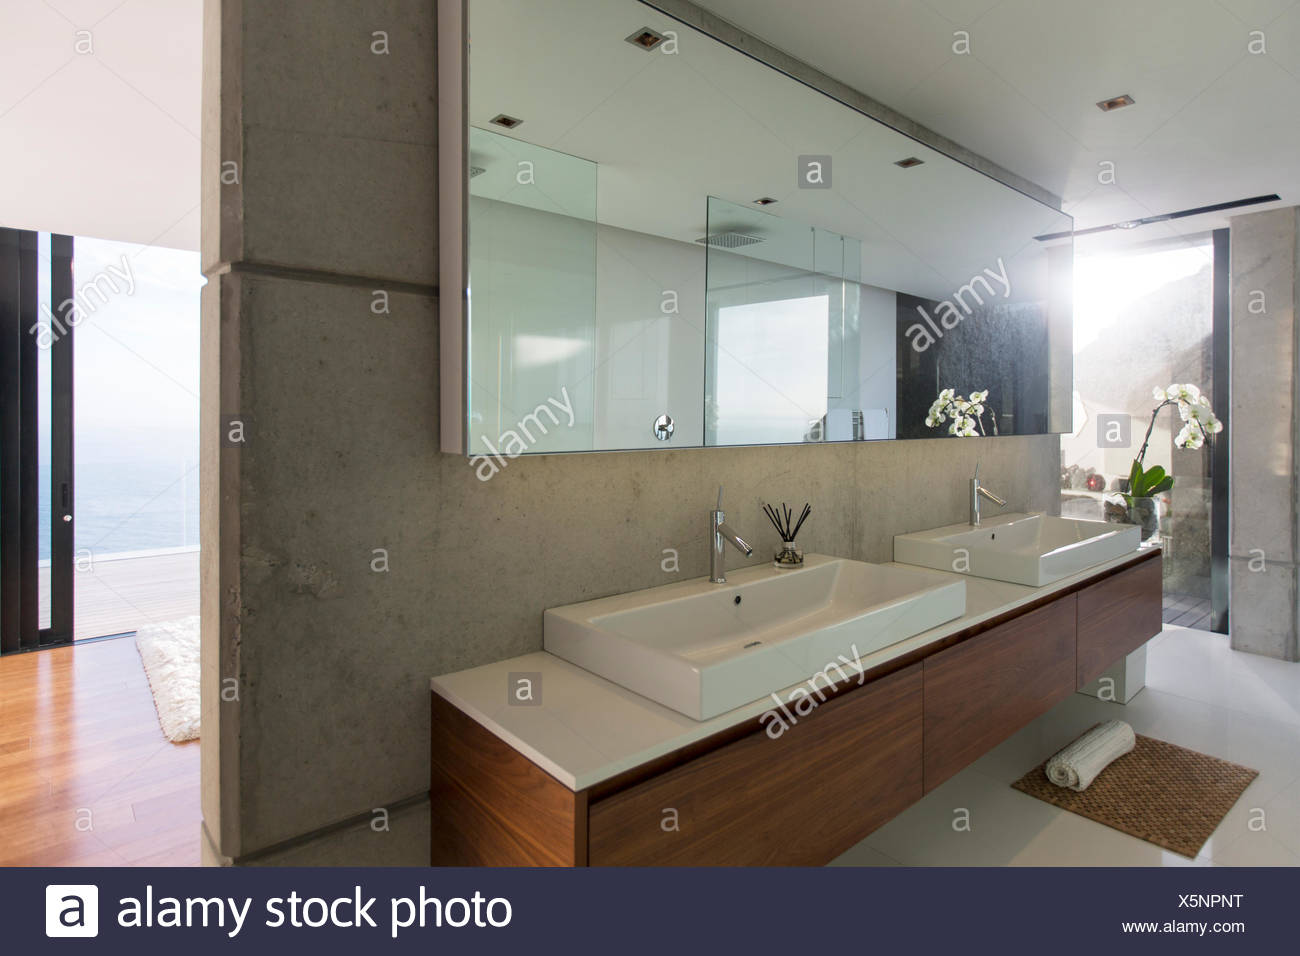 Sinks and mirrors in modern bathroom - Stock Image